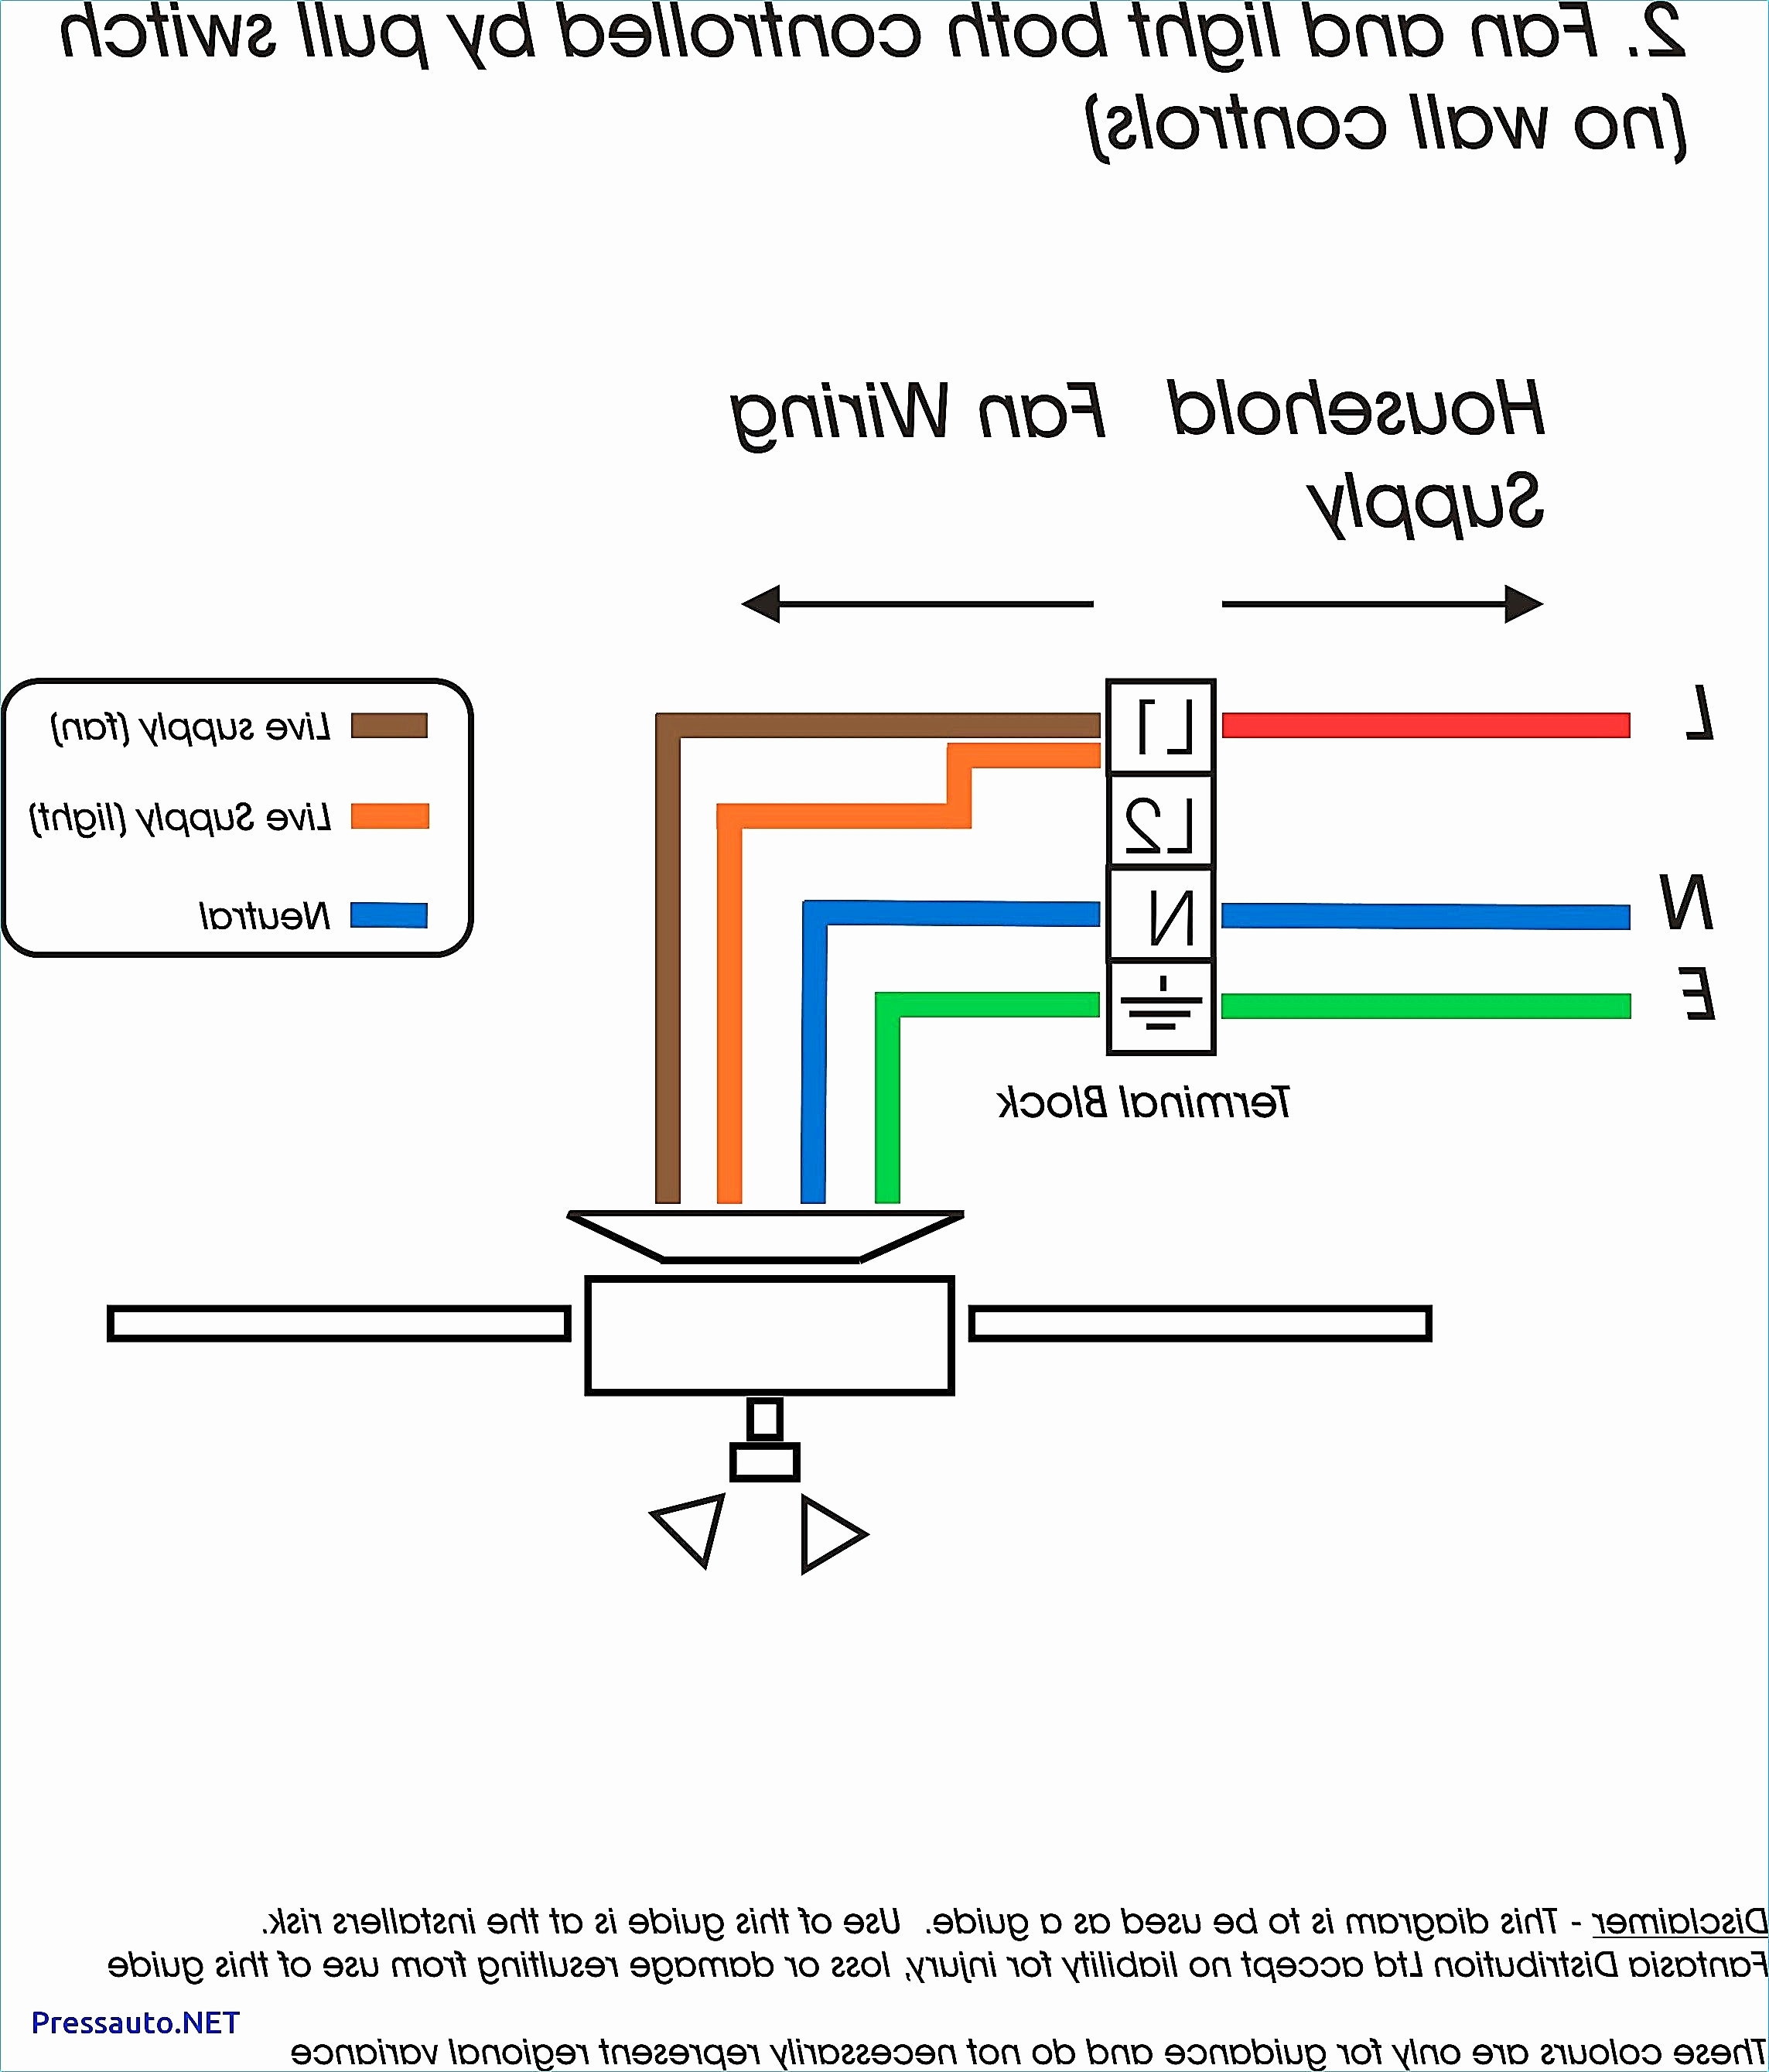 junction box wiring diagram Download-Wiring Diagram Junction Box Light Fresh New Wiring Diagram For Junction Box 14-n